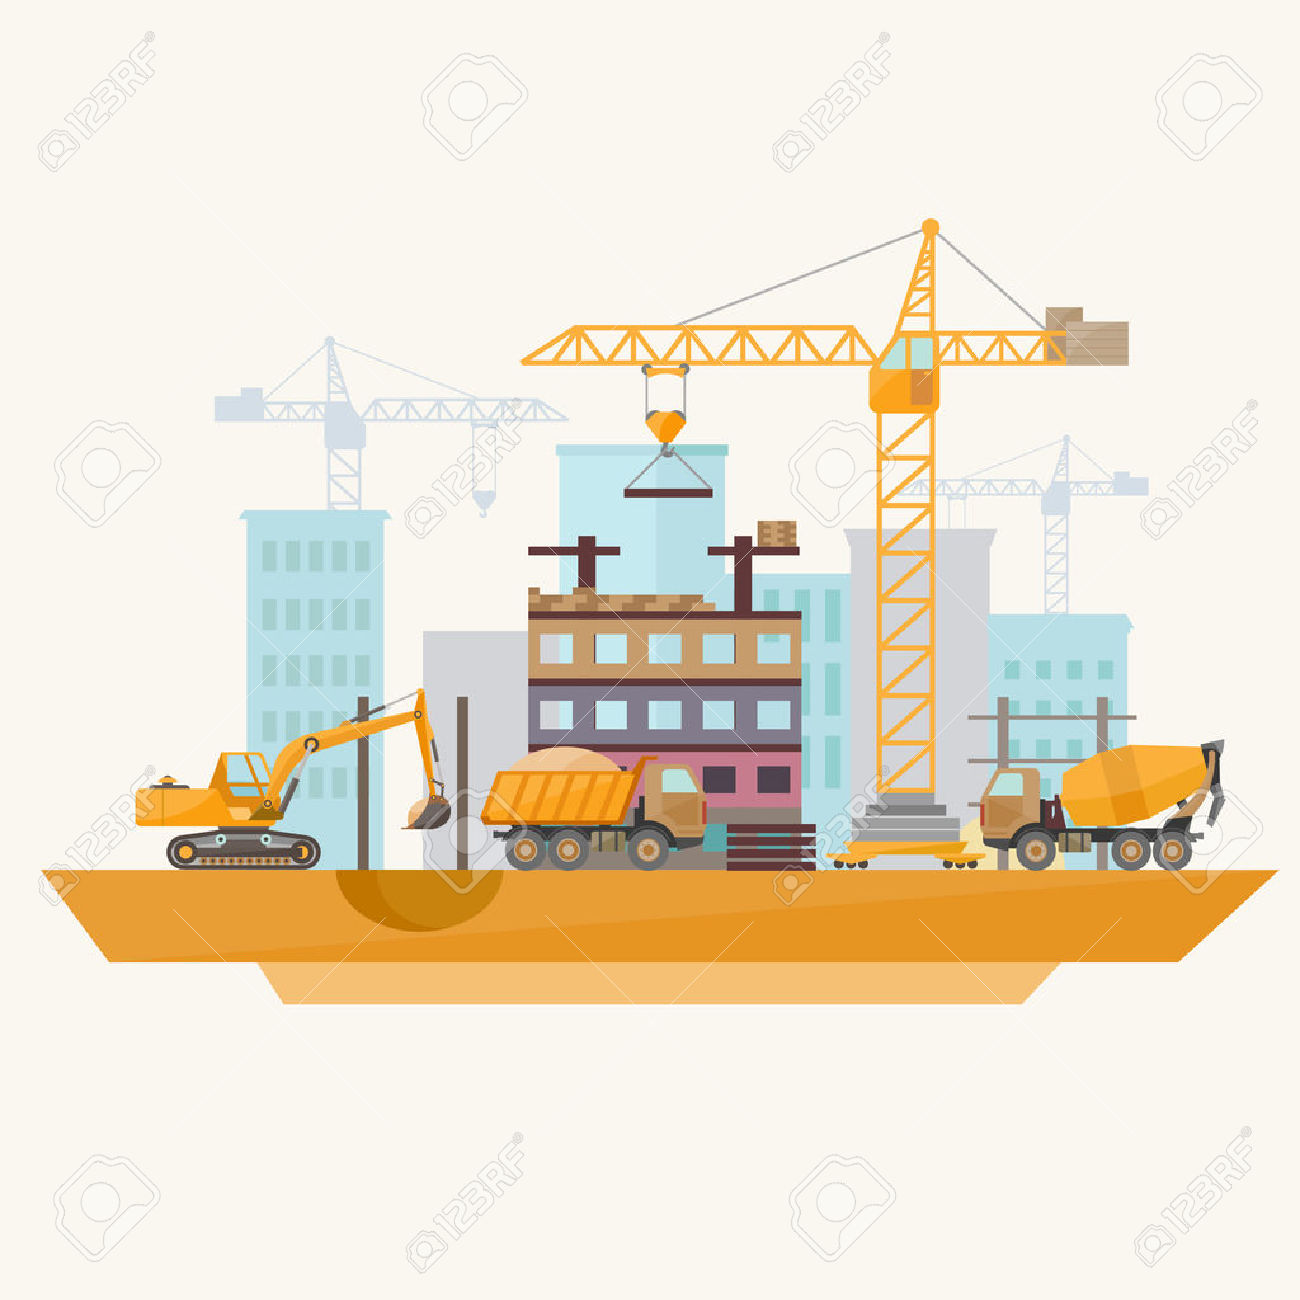 Construction Of Modern Buildings. Flat Design. Royalty Free.